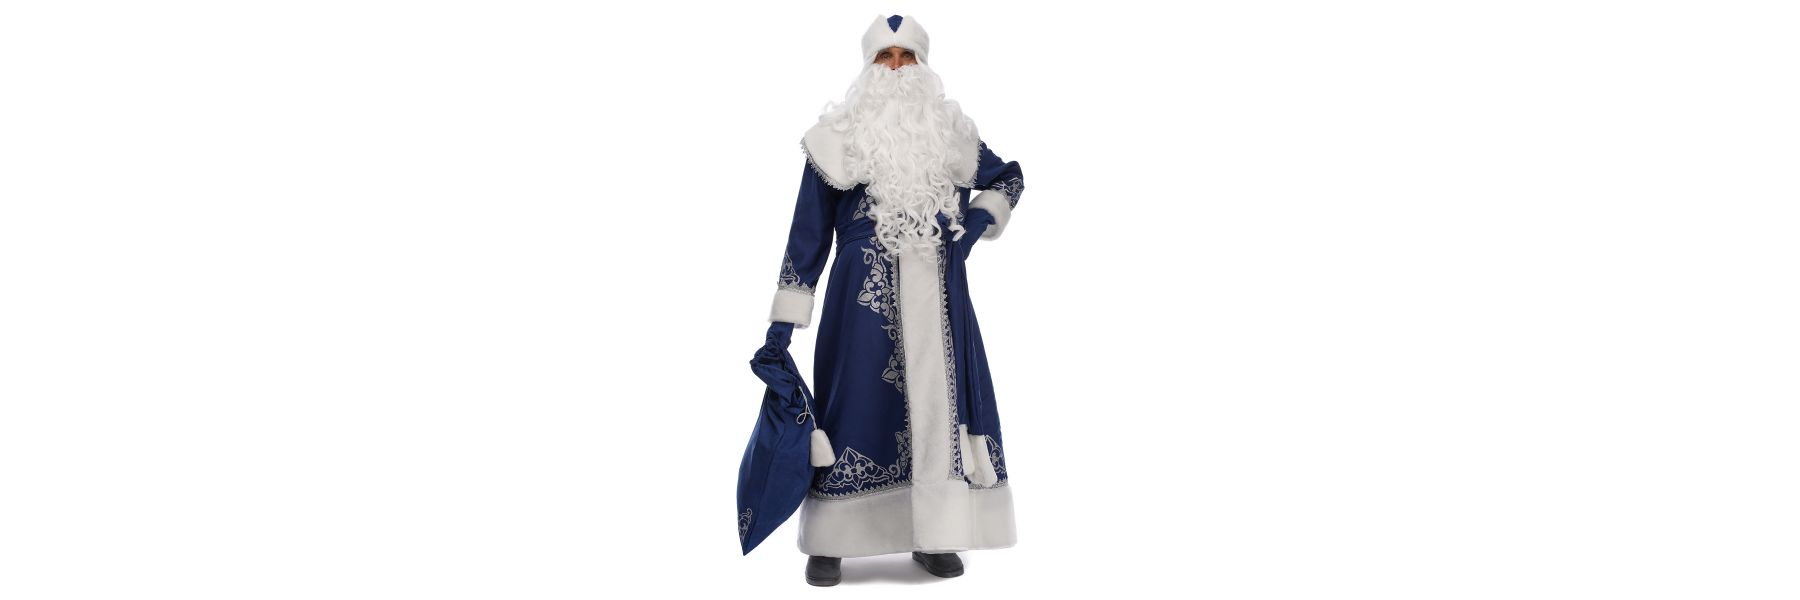 The perfect outfit for a New Year's wizard: features of choosing a Santa Claus costume